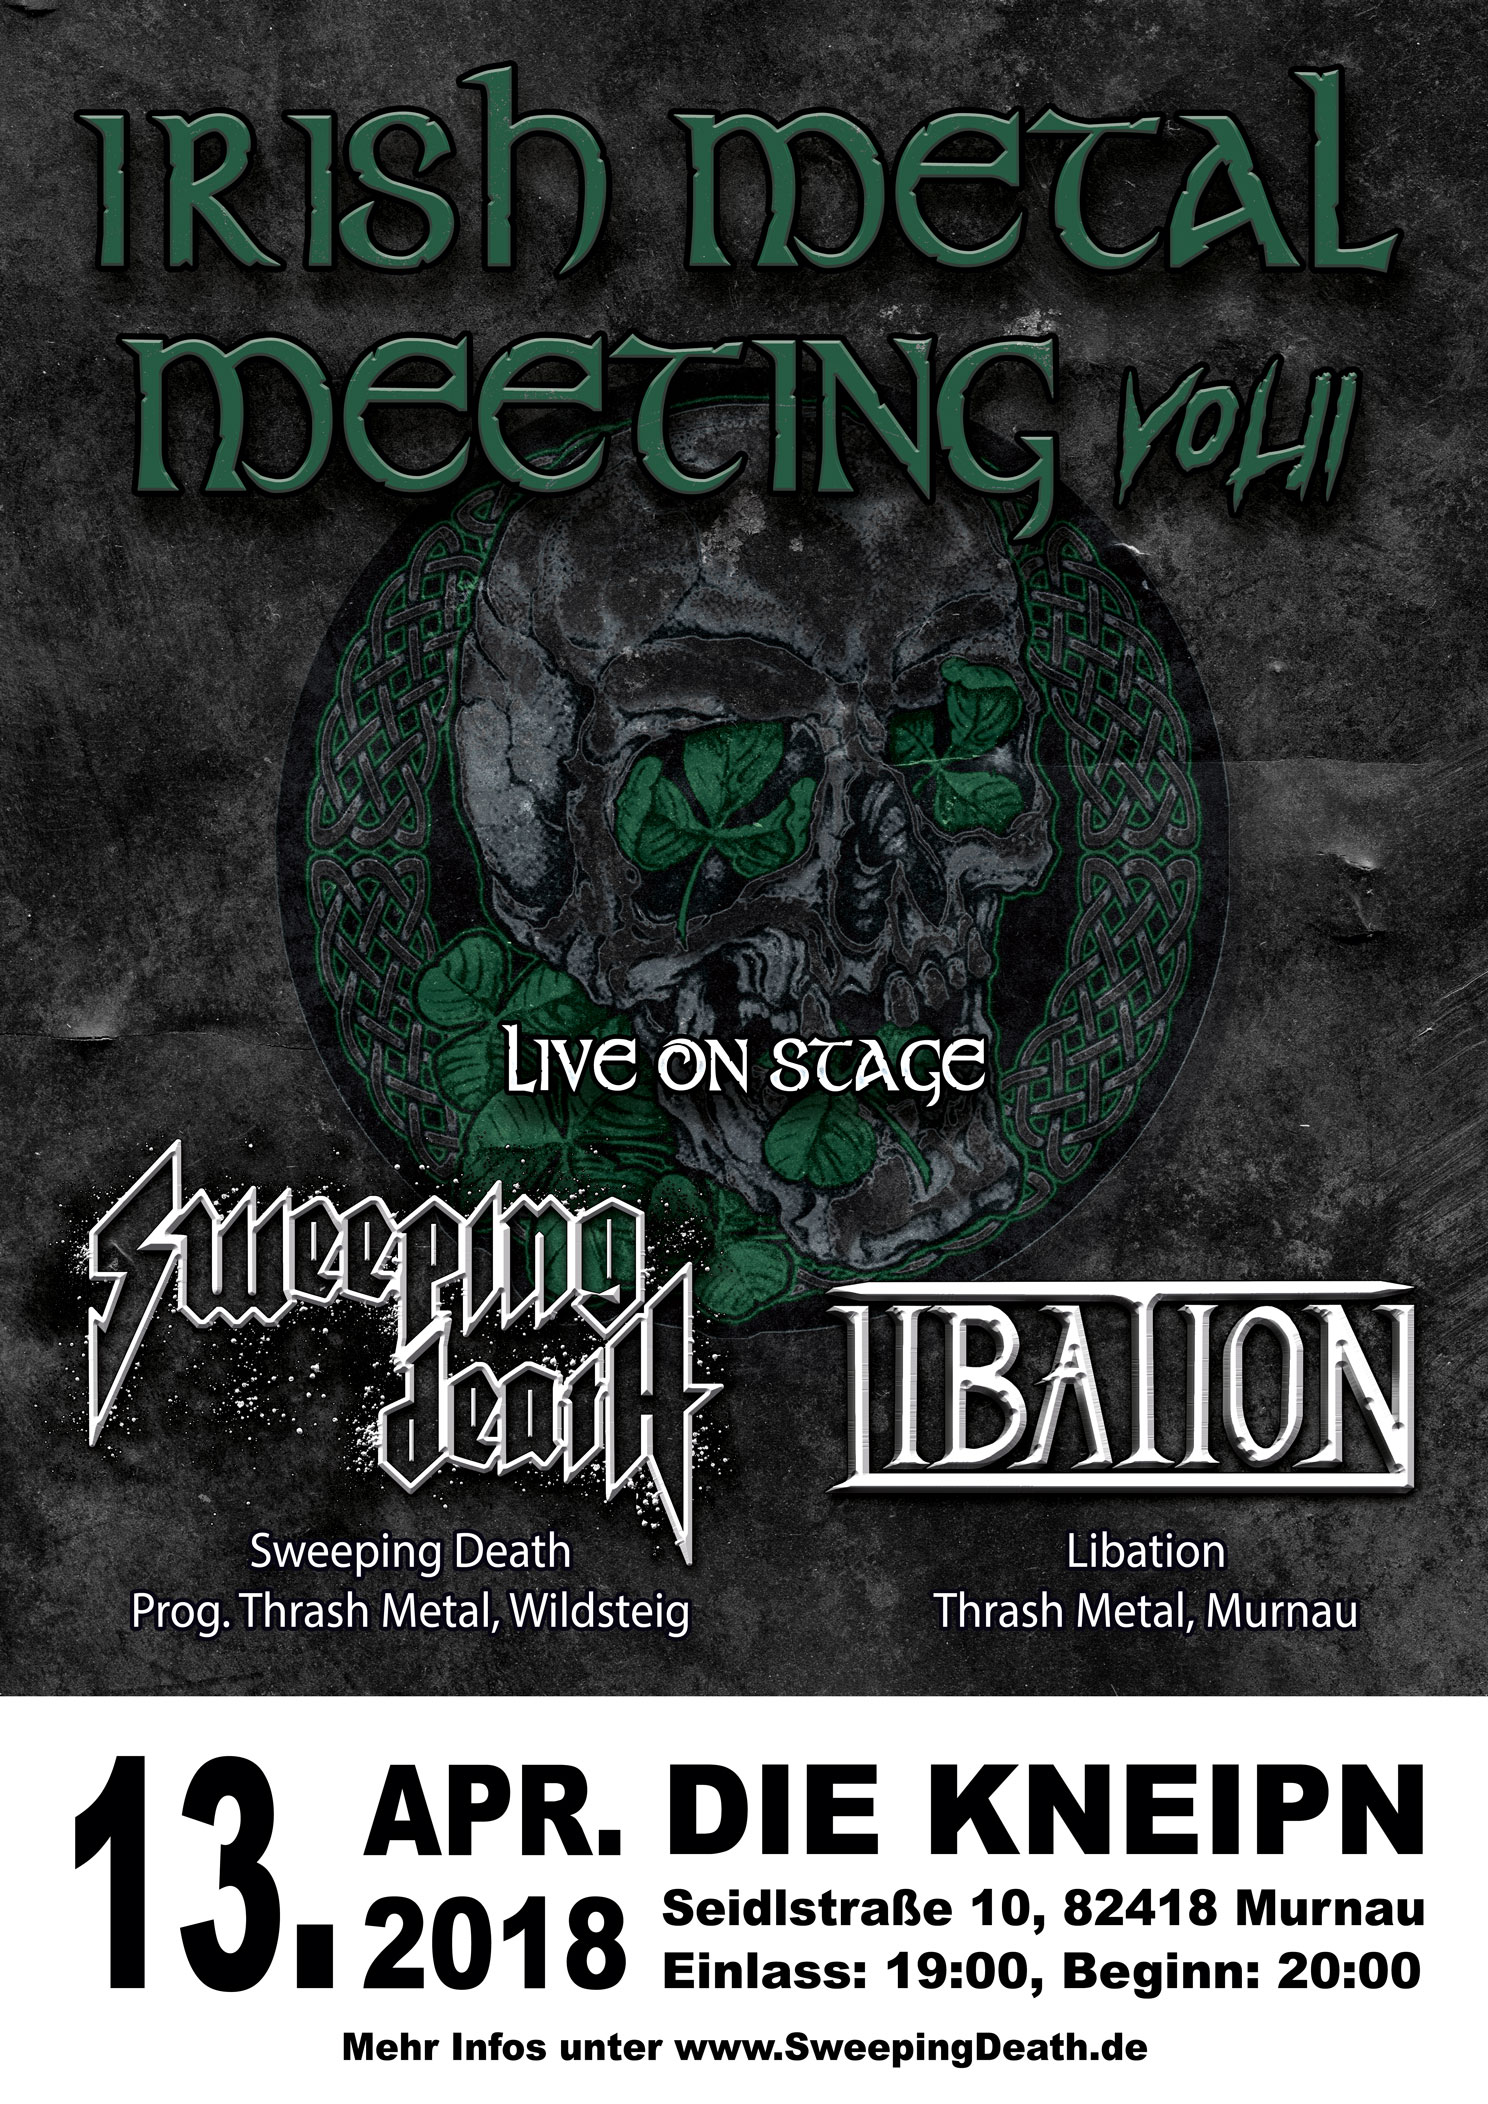 Sweeping-Death_Irish-Metal-Meeting_Germany_2018_Flyer_Bayern